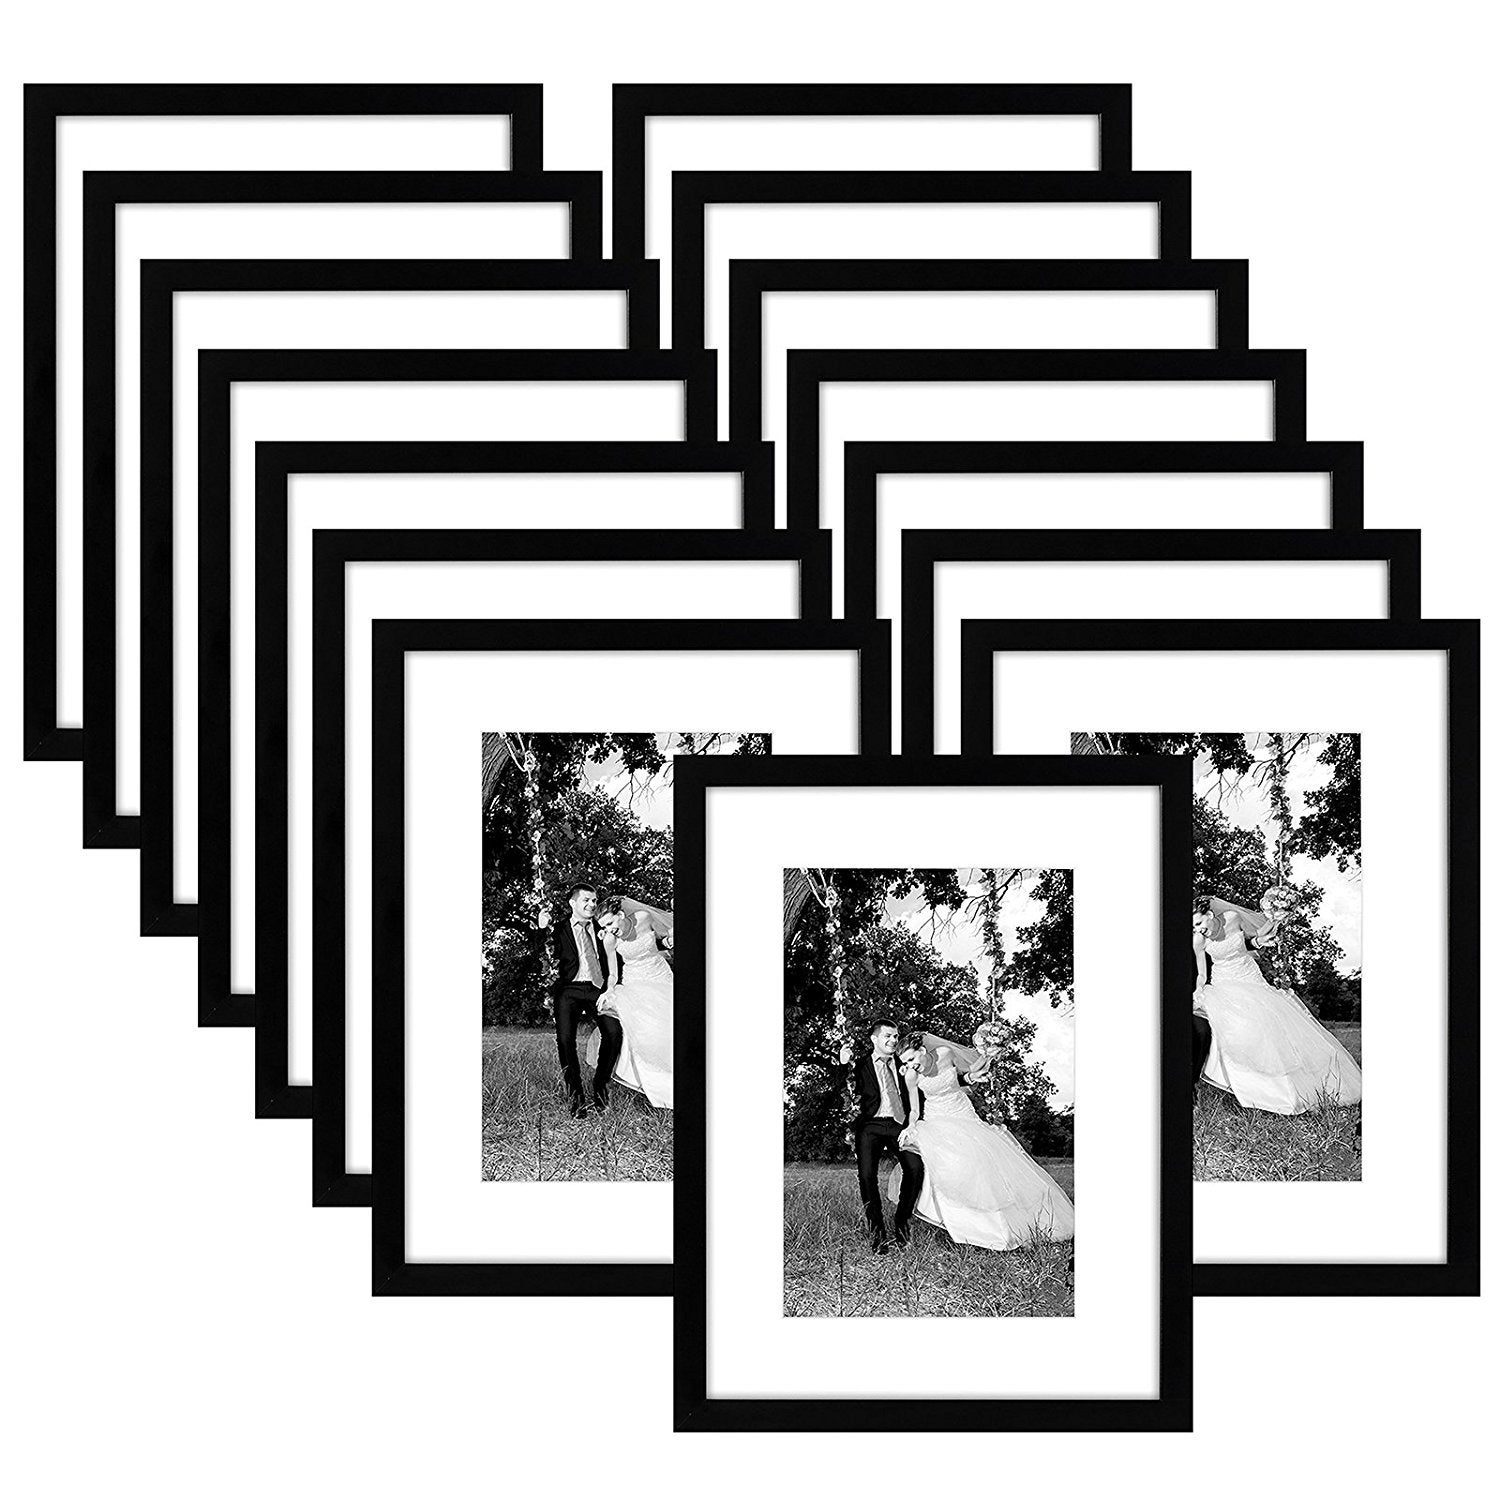 Shop Americanflat 15 Pack - 12x16 Black Picture Frames - Matted to ...